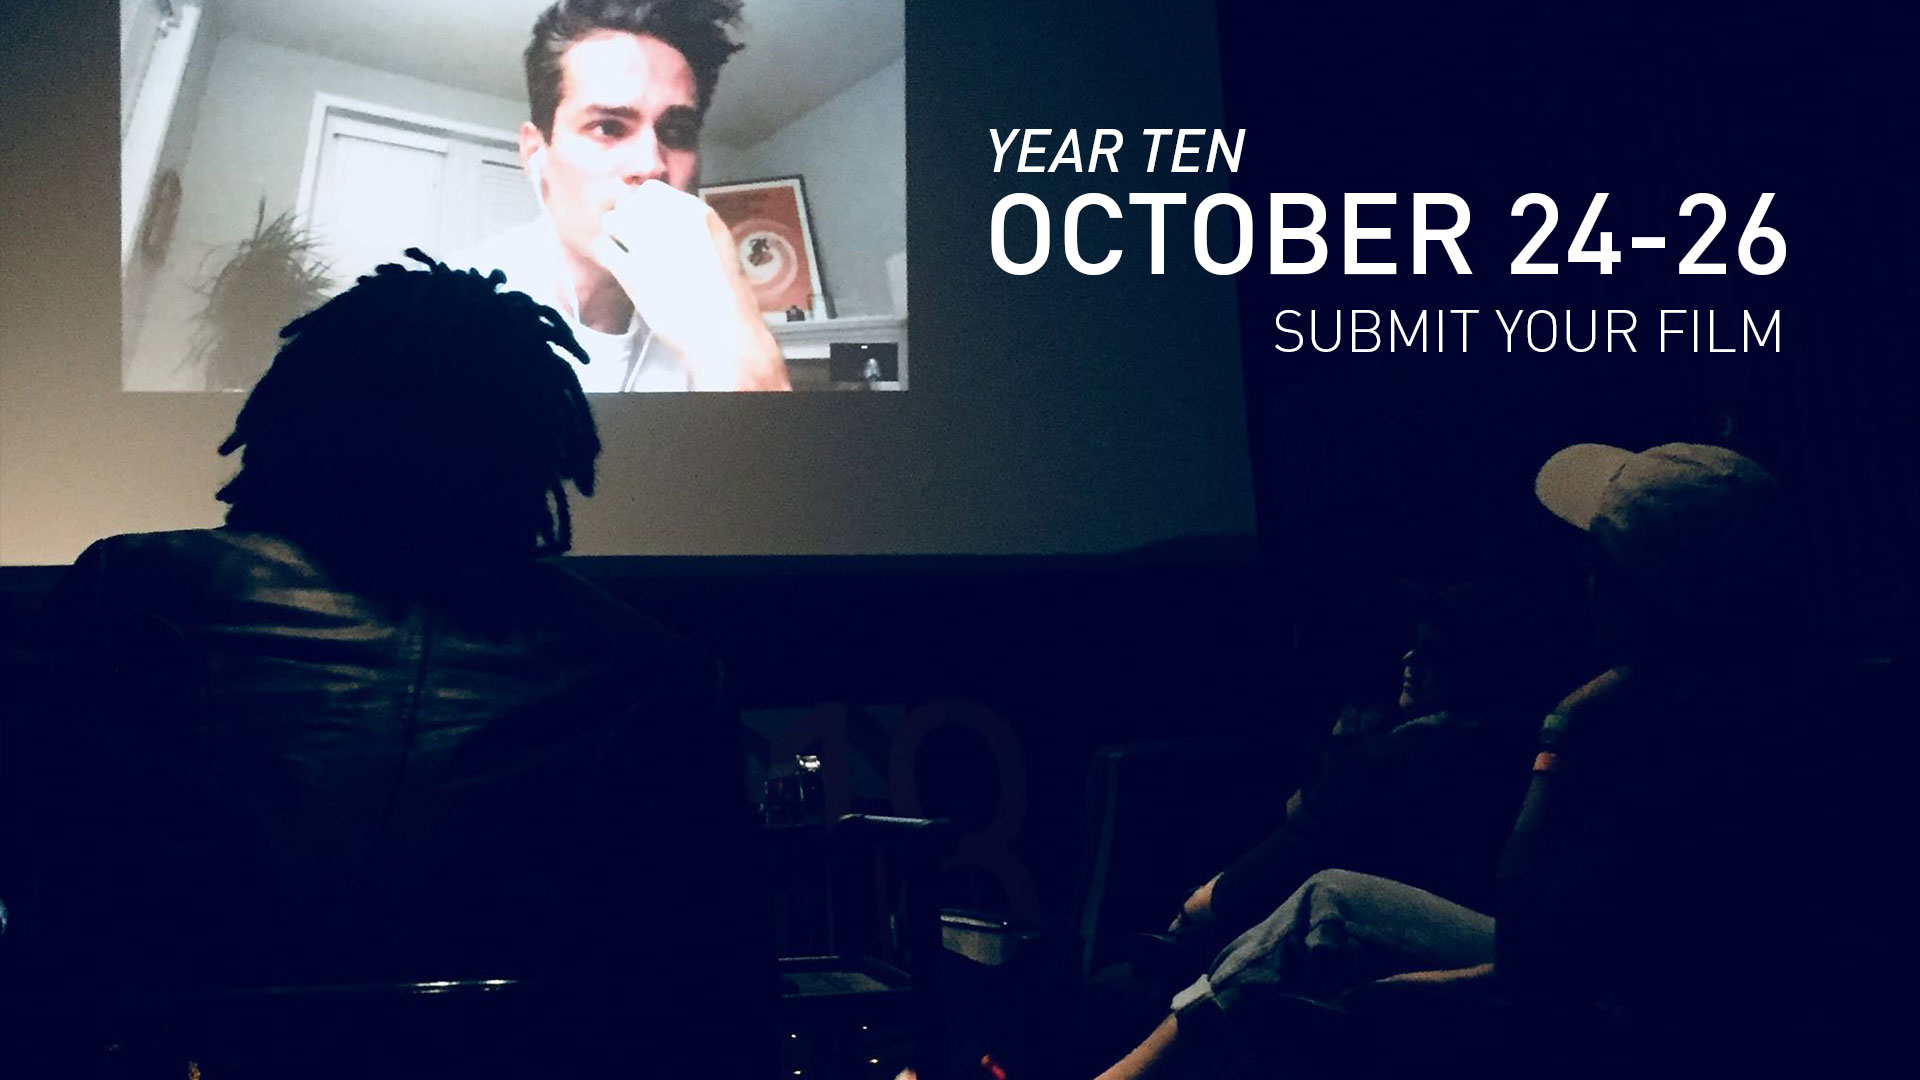 TENTH ANNUAL EASTERN OREGON FILM FESTIVAL OPENS FOR SUBMISSION / CALLS FOR SUPPORT